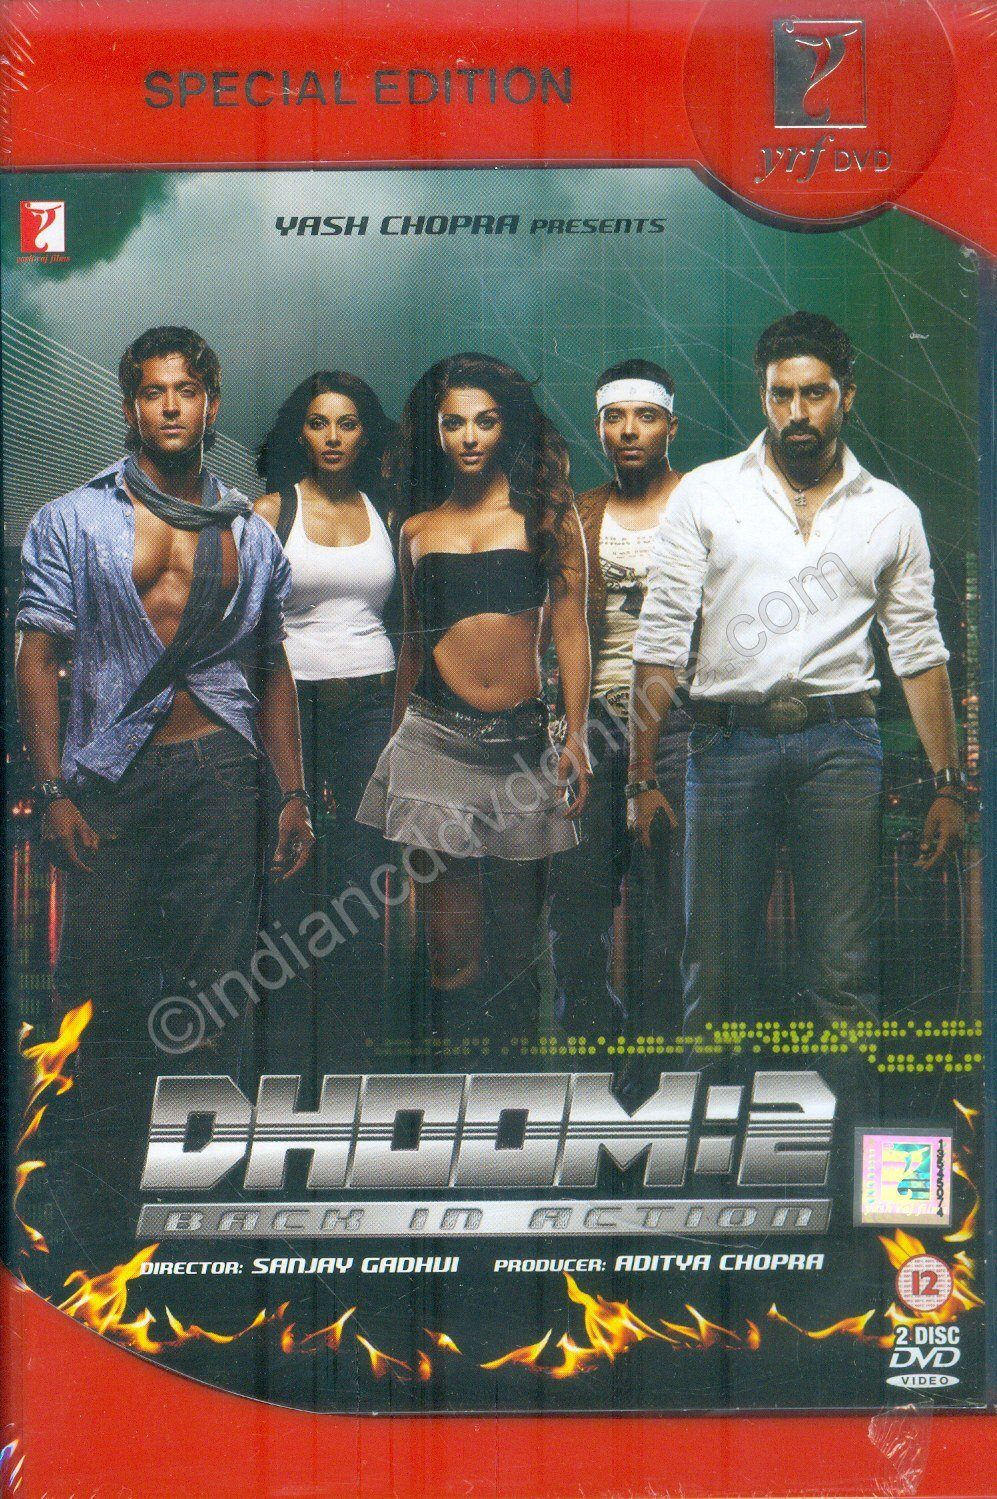 Amazonin Buy Dhoom 2 DVD Blu Ray Online At Best Prices In India